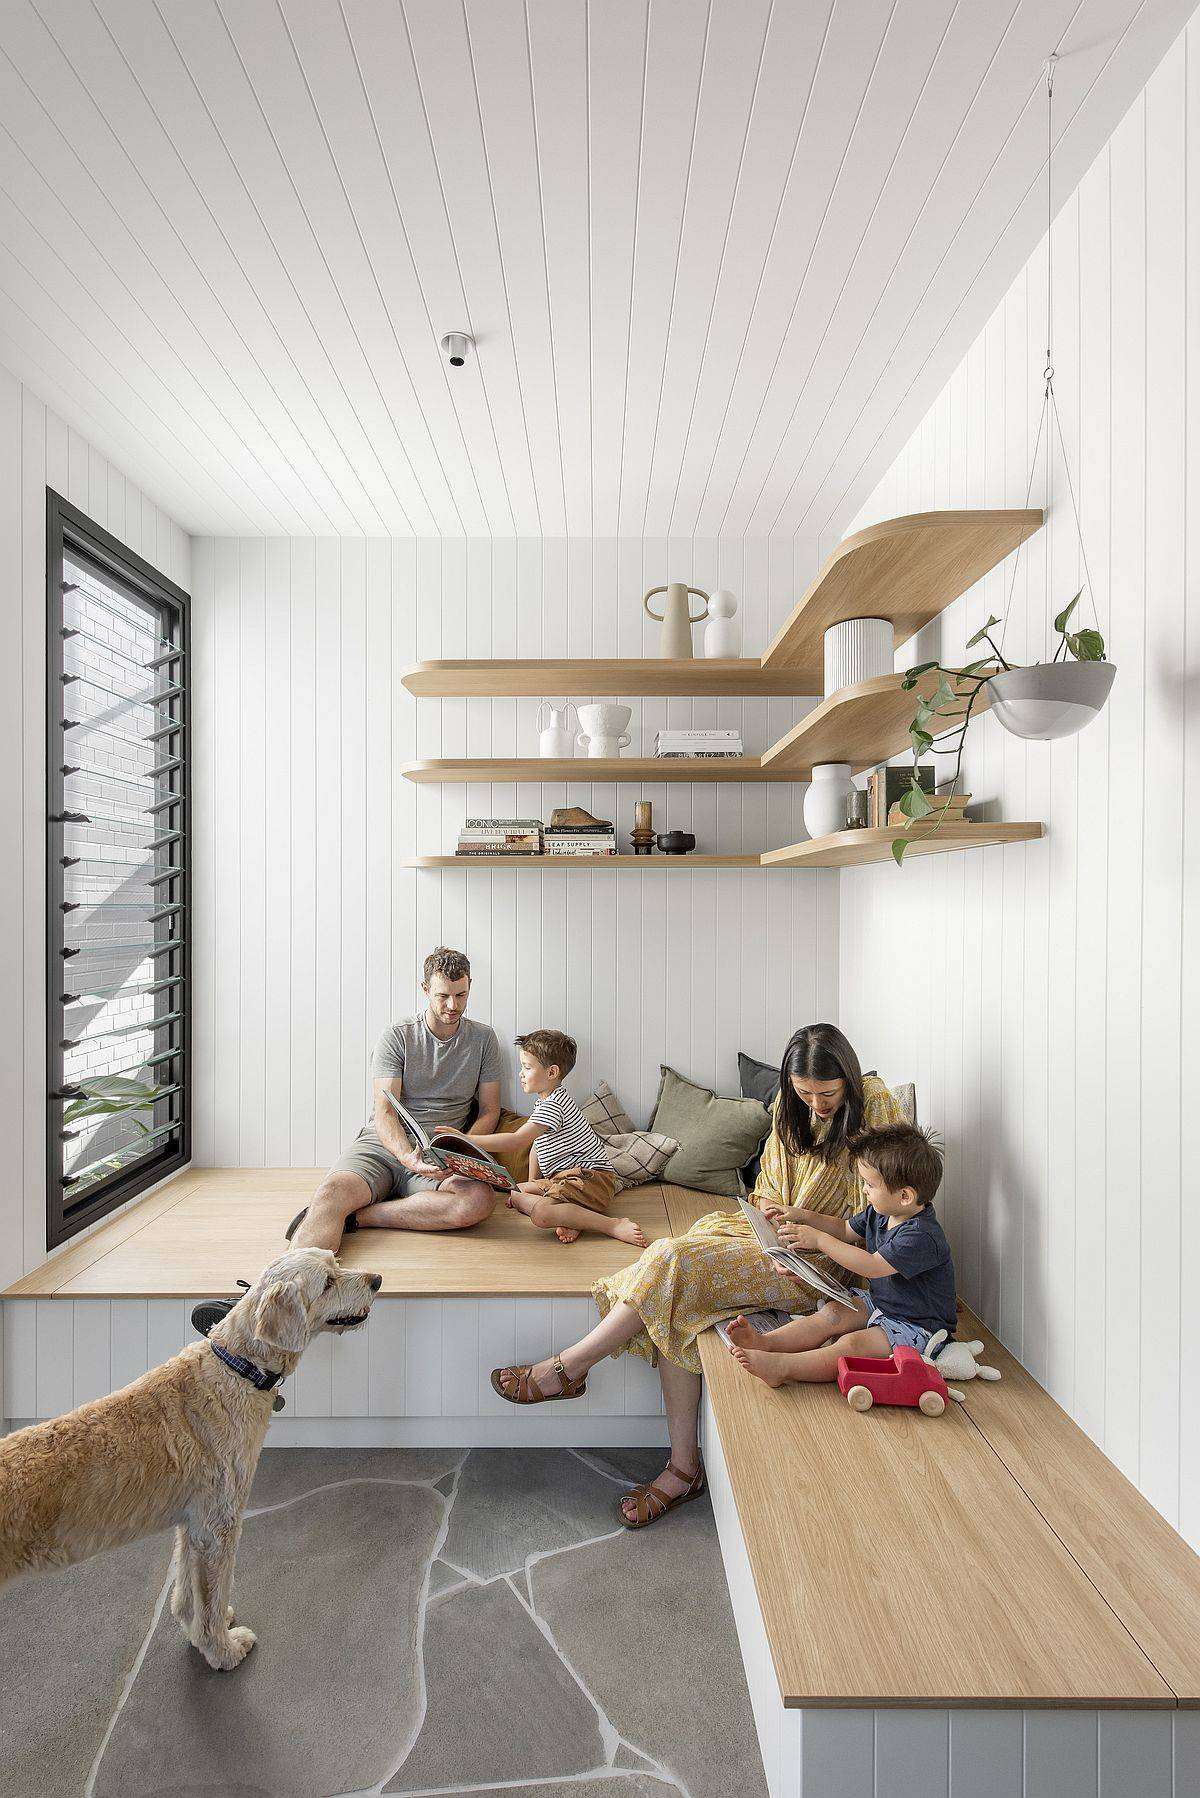 Custom wooden bench with storage and floating wooden shelves for the family room